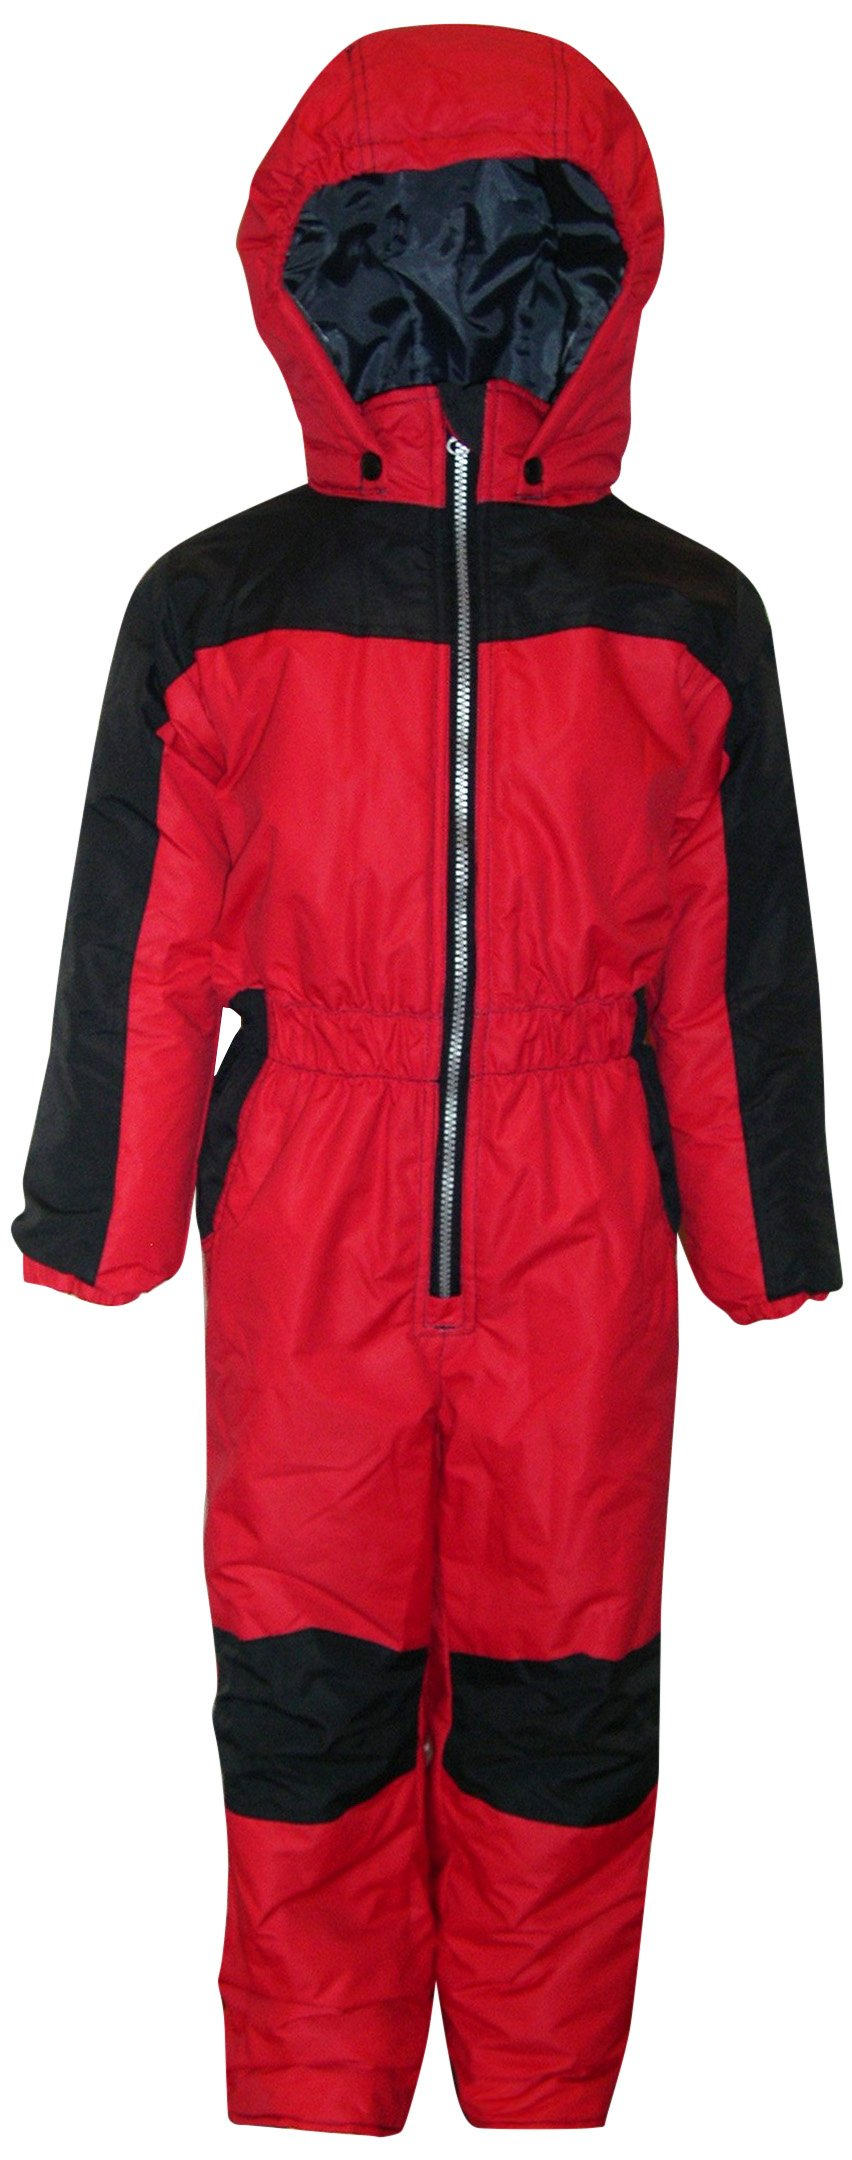 Pulse Little Boys and Toddler 1 Piece Snowsuit Coveralls (Medium, Red/Black)